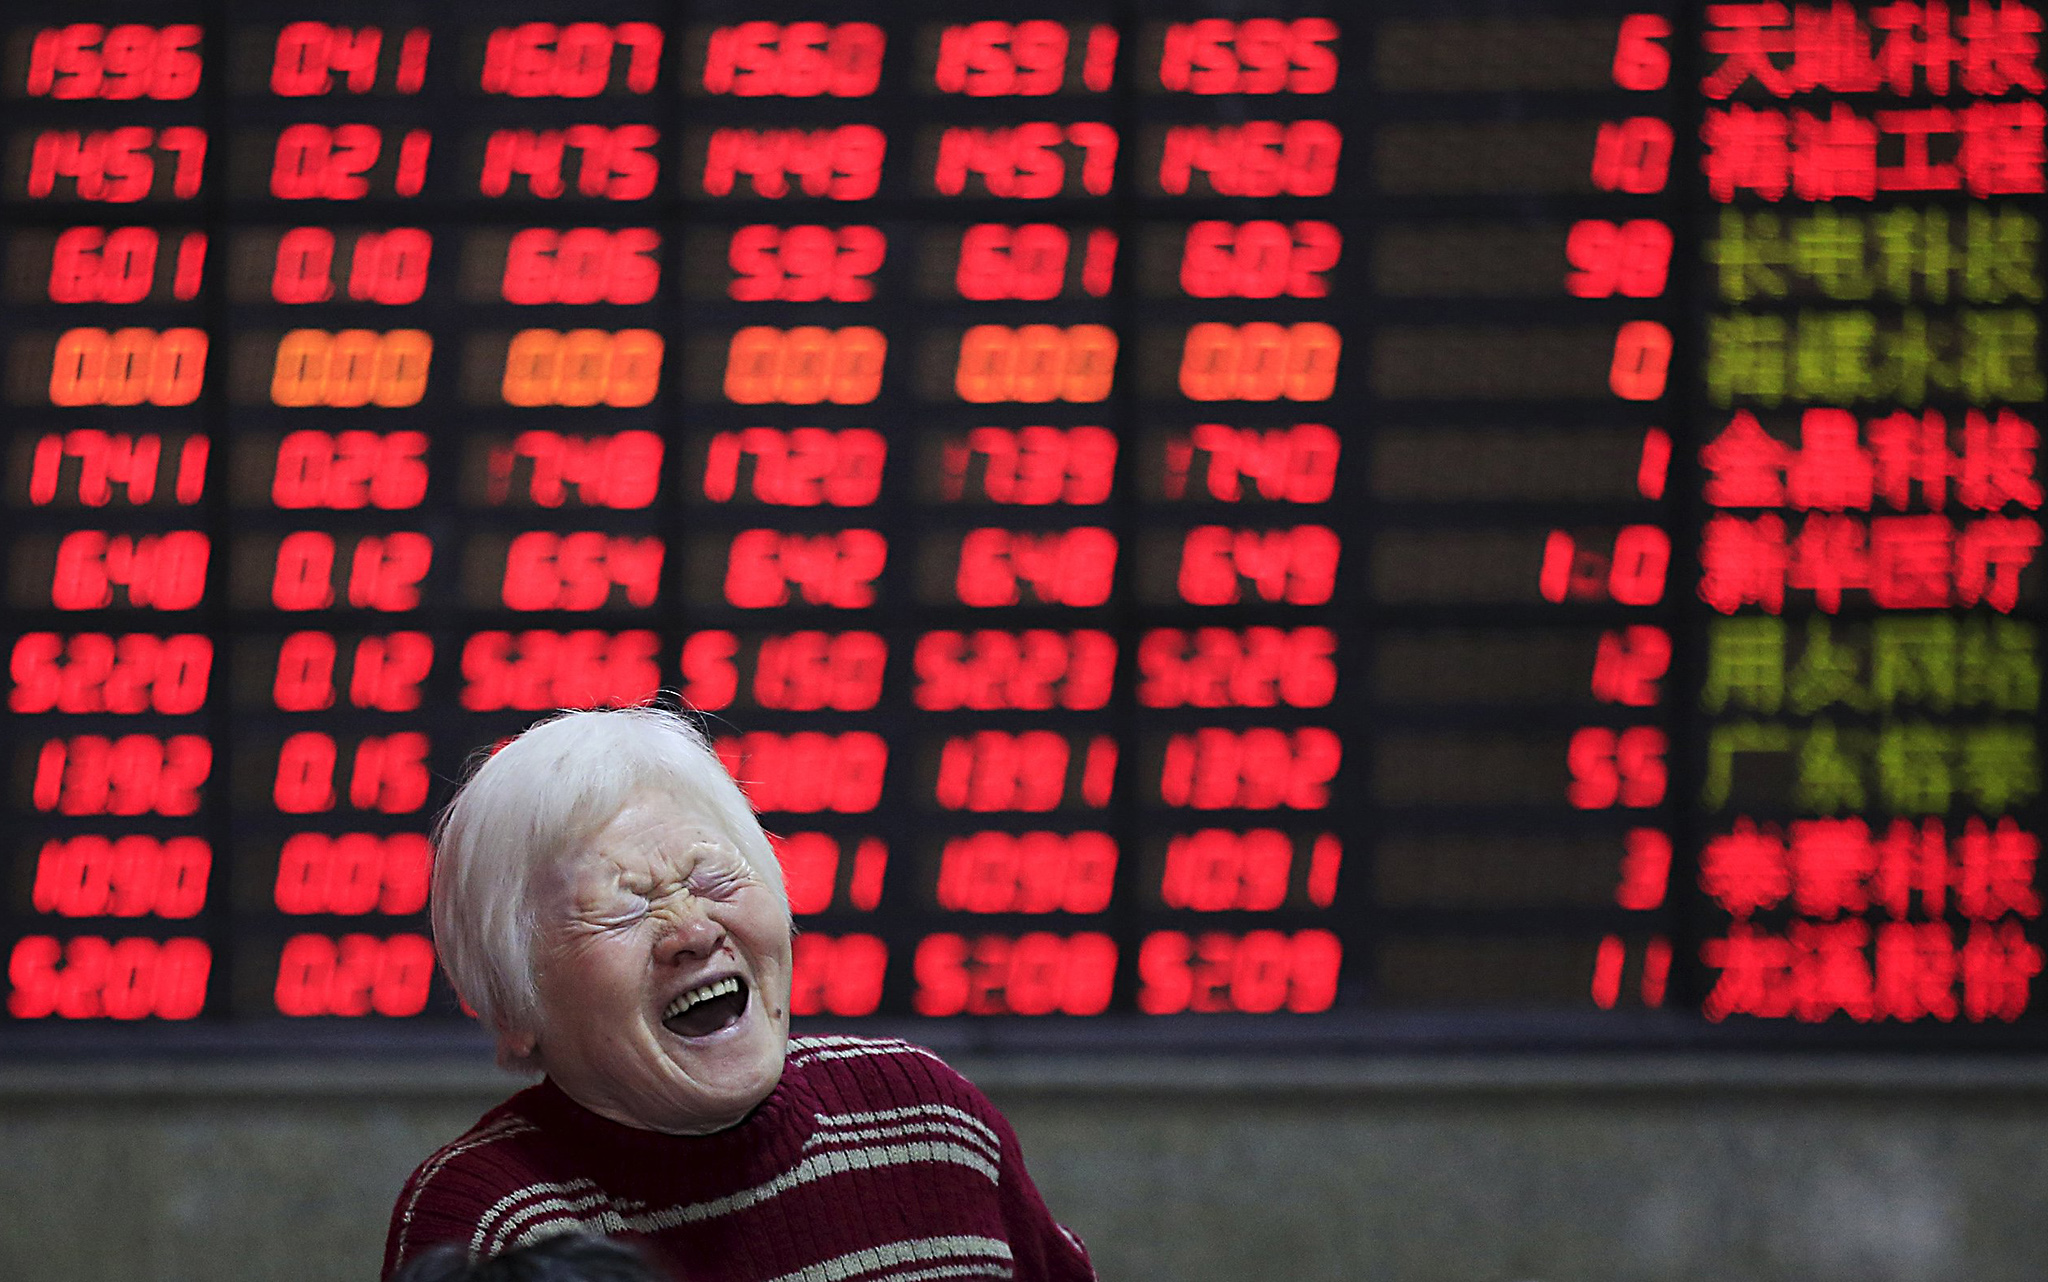 An investor smiles in front of an electronic board showing stock information at a brokerage house in Shanghai...An investor reacts in front of an electronic board showing stock information at a brokerage house in Shanghai, China, March 7, 2016. REUTERS/Aly Song